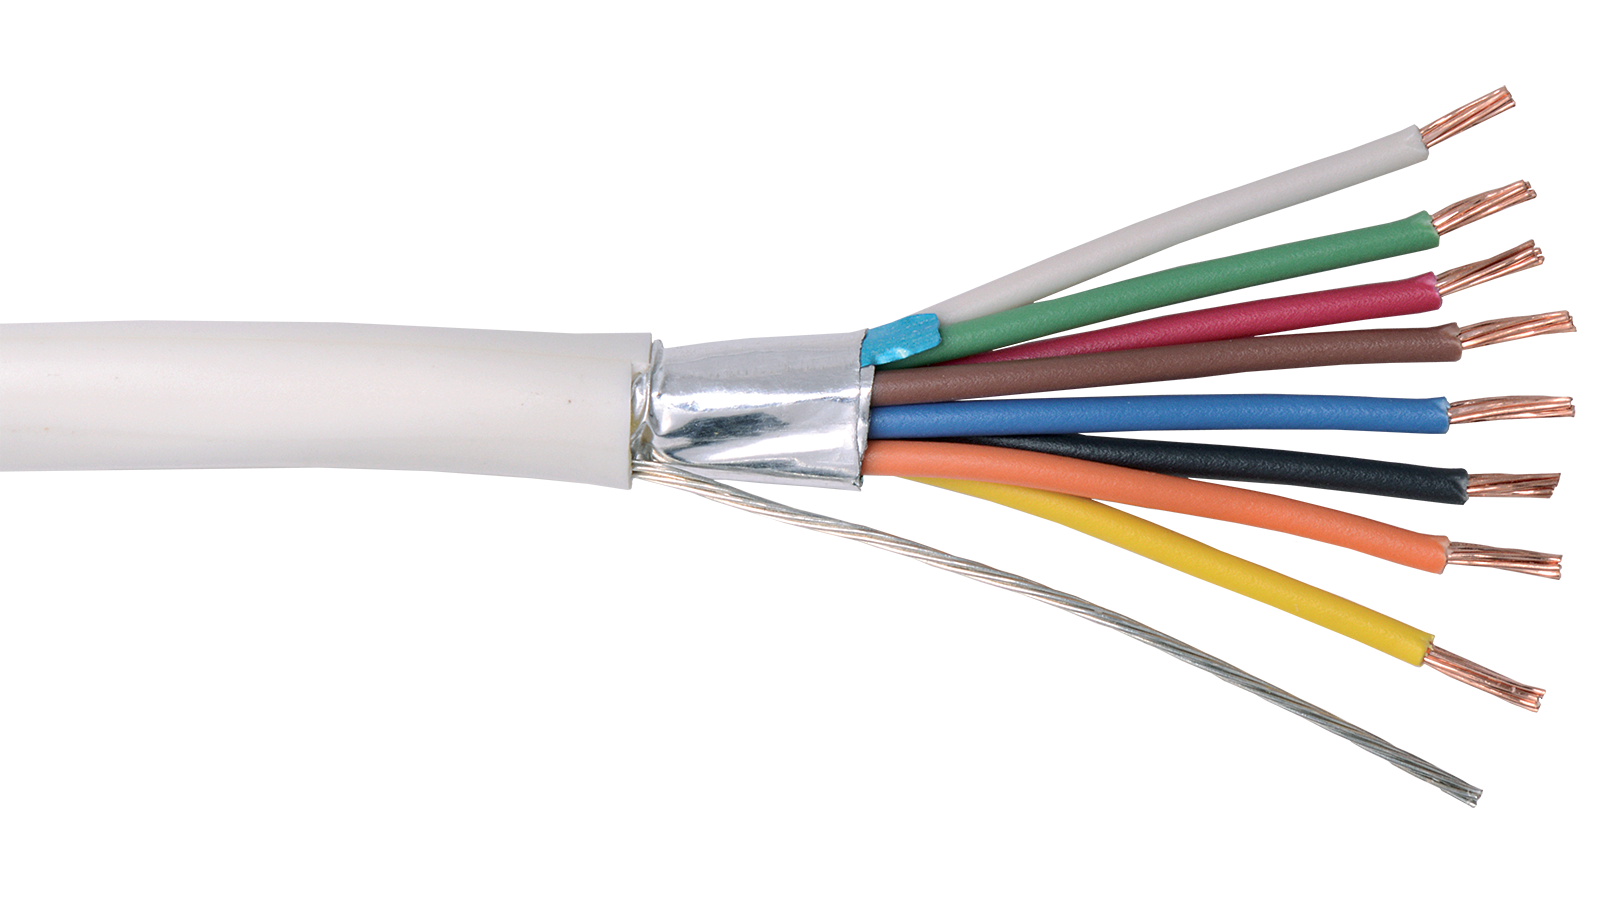 22-8C-PSH-BLU - Commercial grade general purpose 22 AWG 8 conductor ...